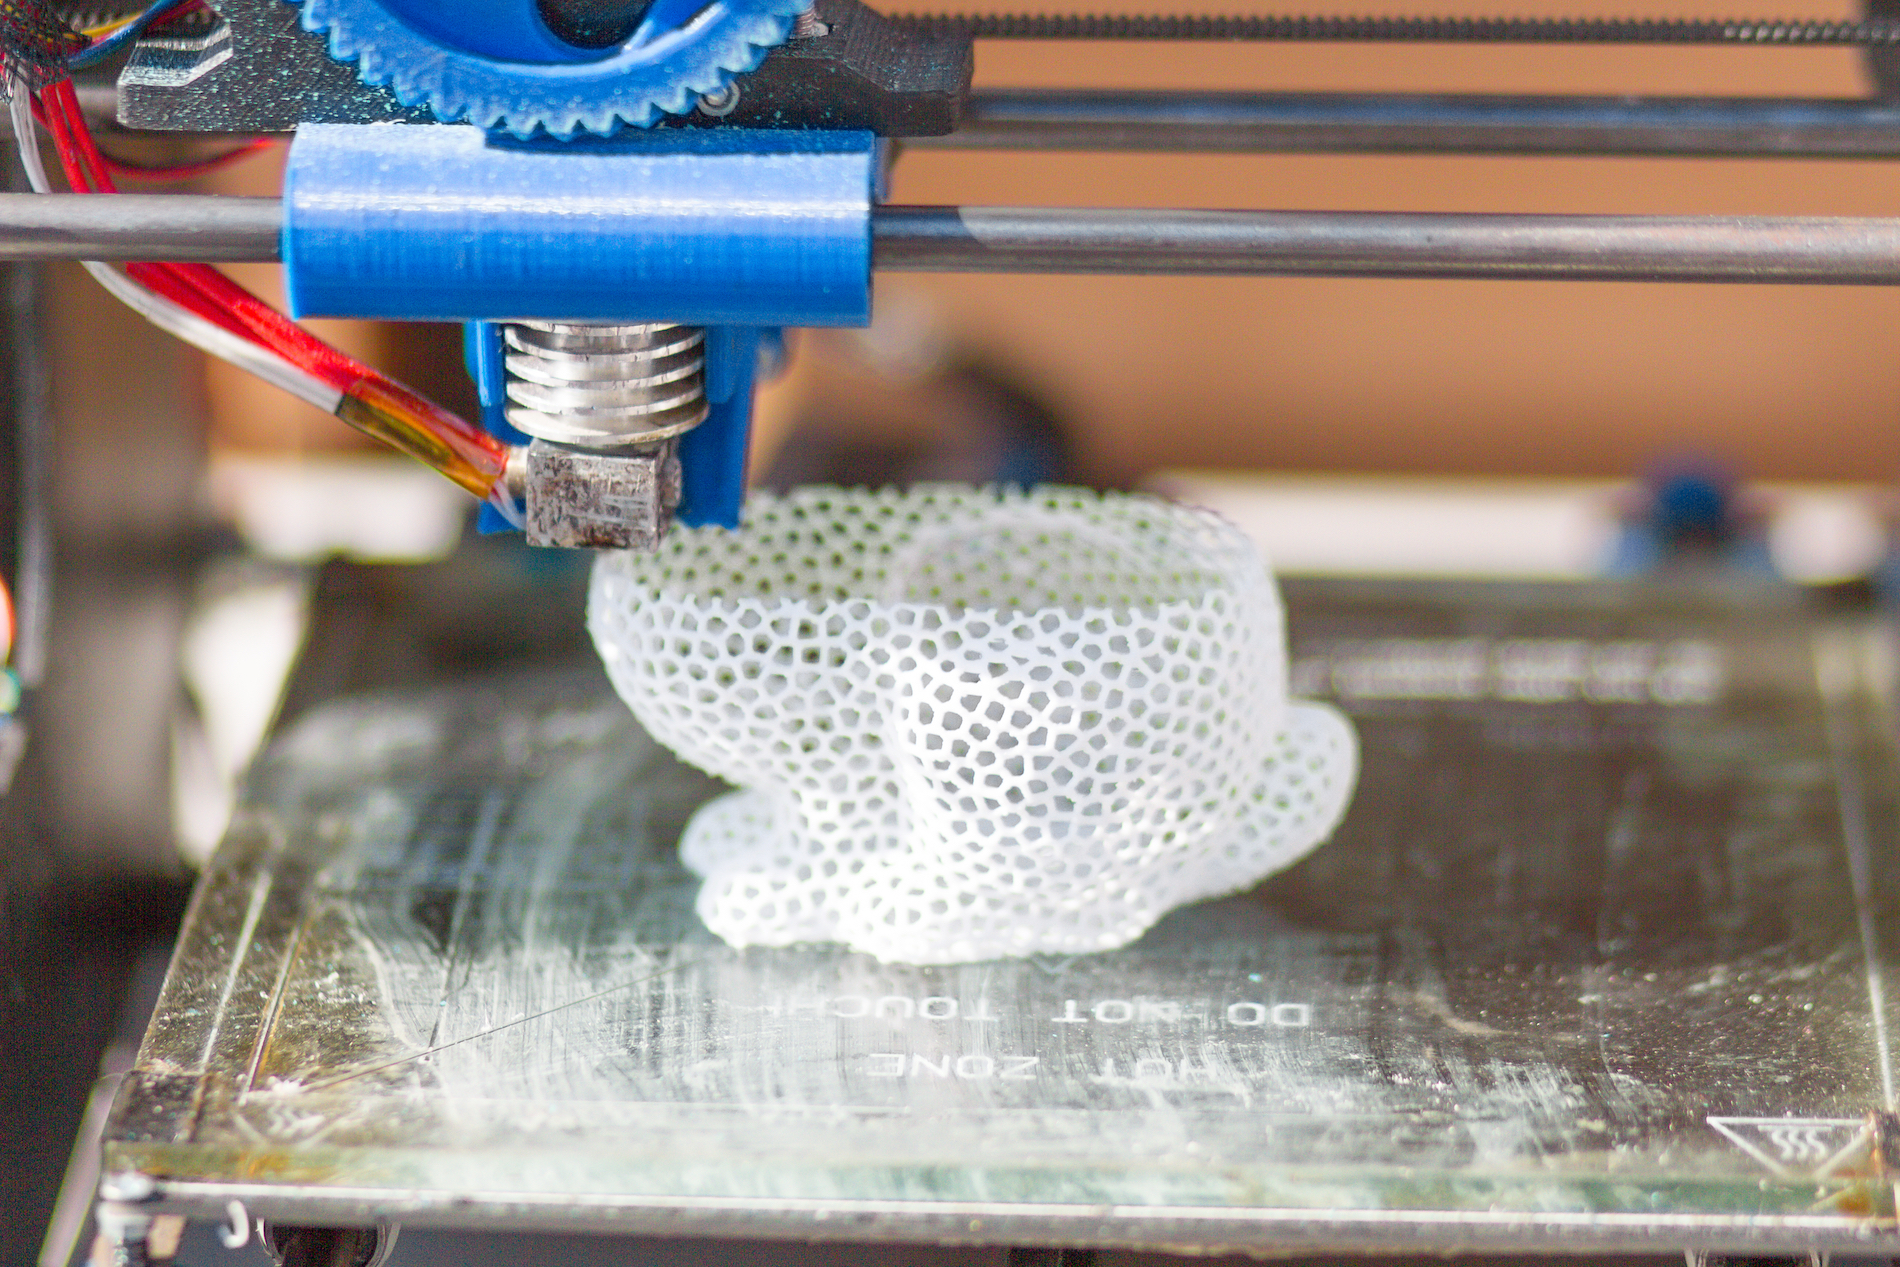 Dubai to set up integrated 3D printing zone at Dubai Expo venue to attract investors